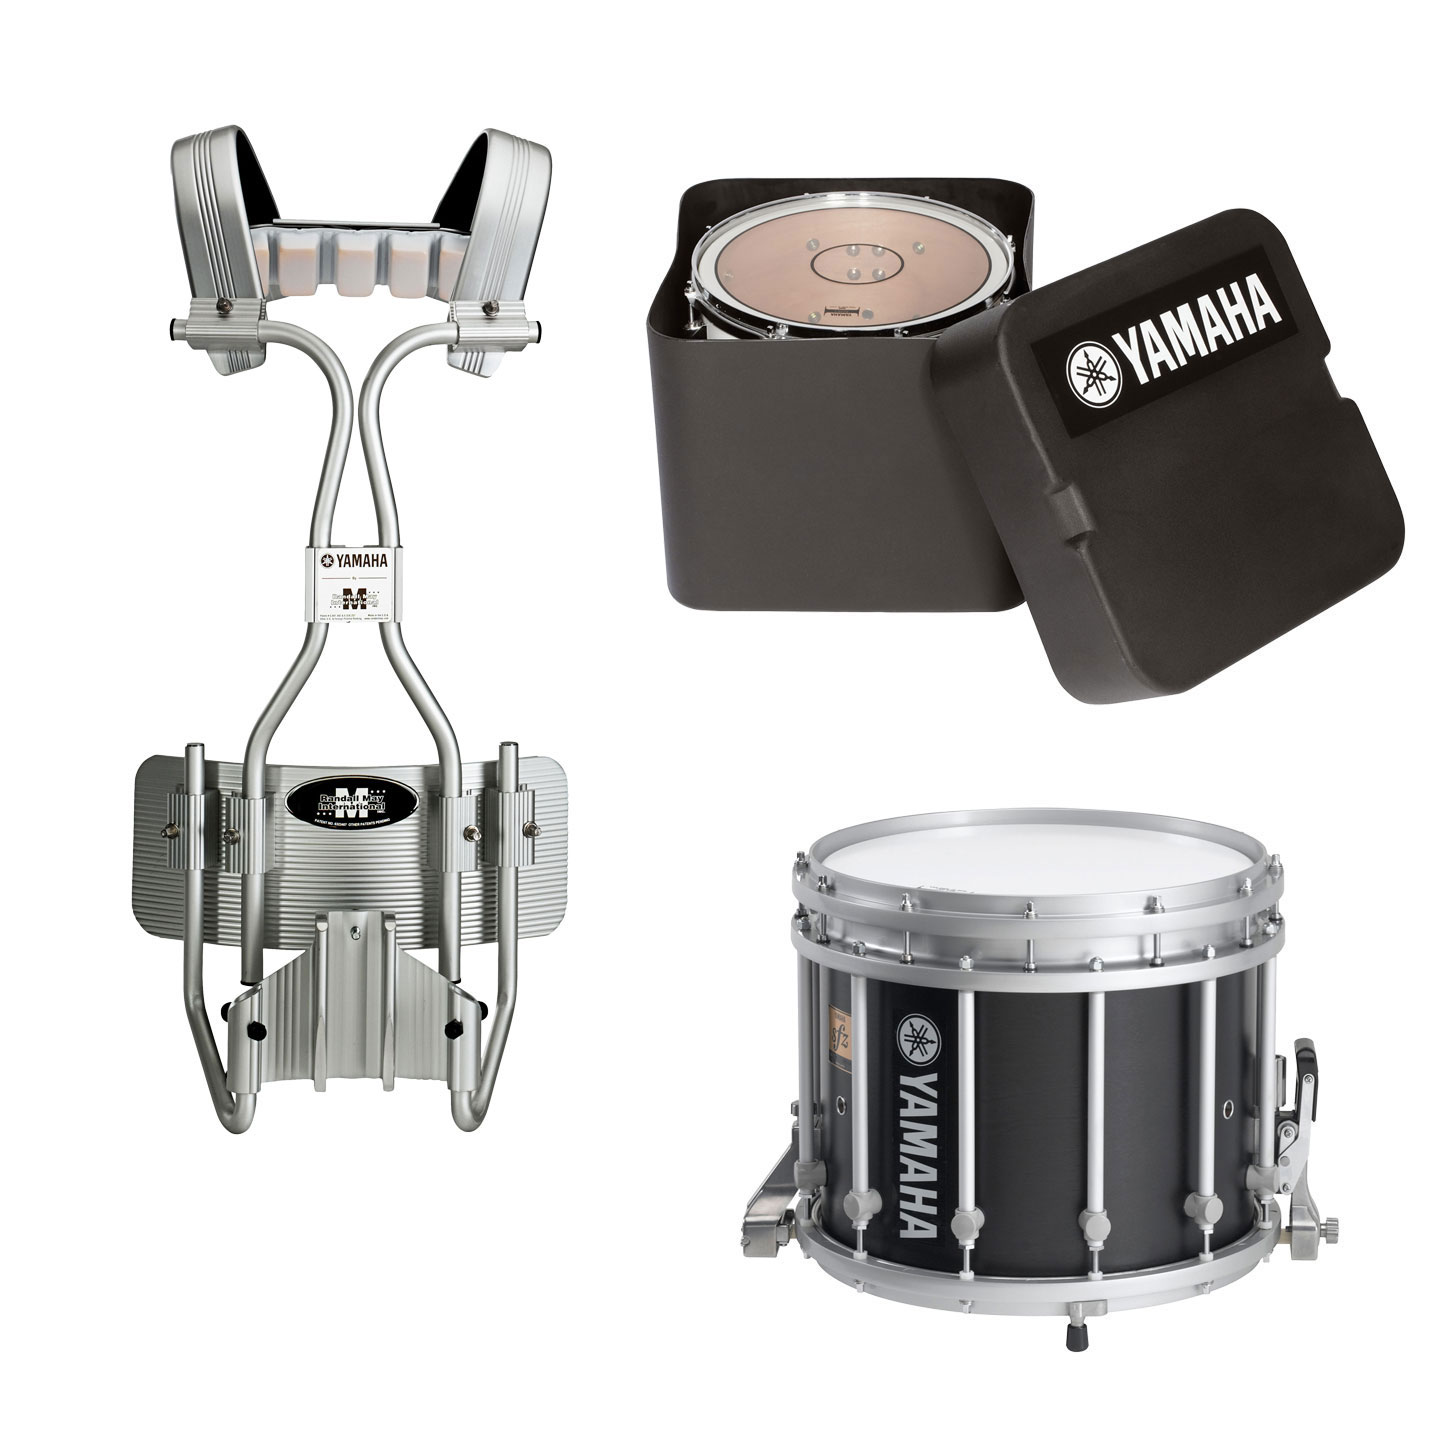 "Yamaha 14"" (Diameter) x 12"" (Deep) 9300 SFZ Marching Snare Drum with Chrome Hardware, Tube Carrier, and Case"